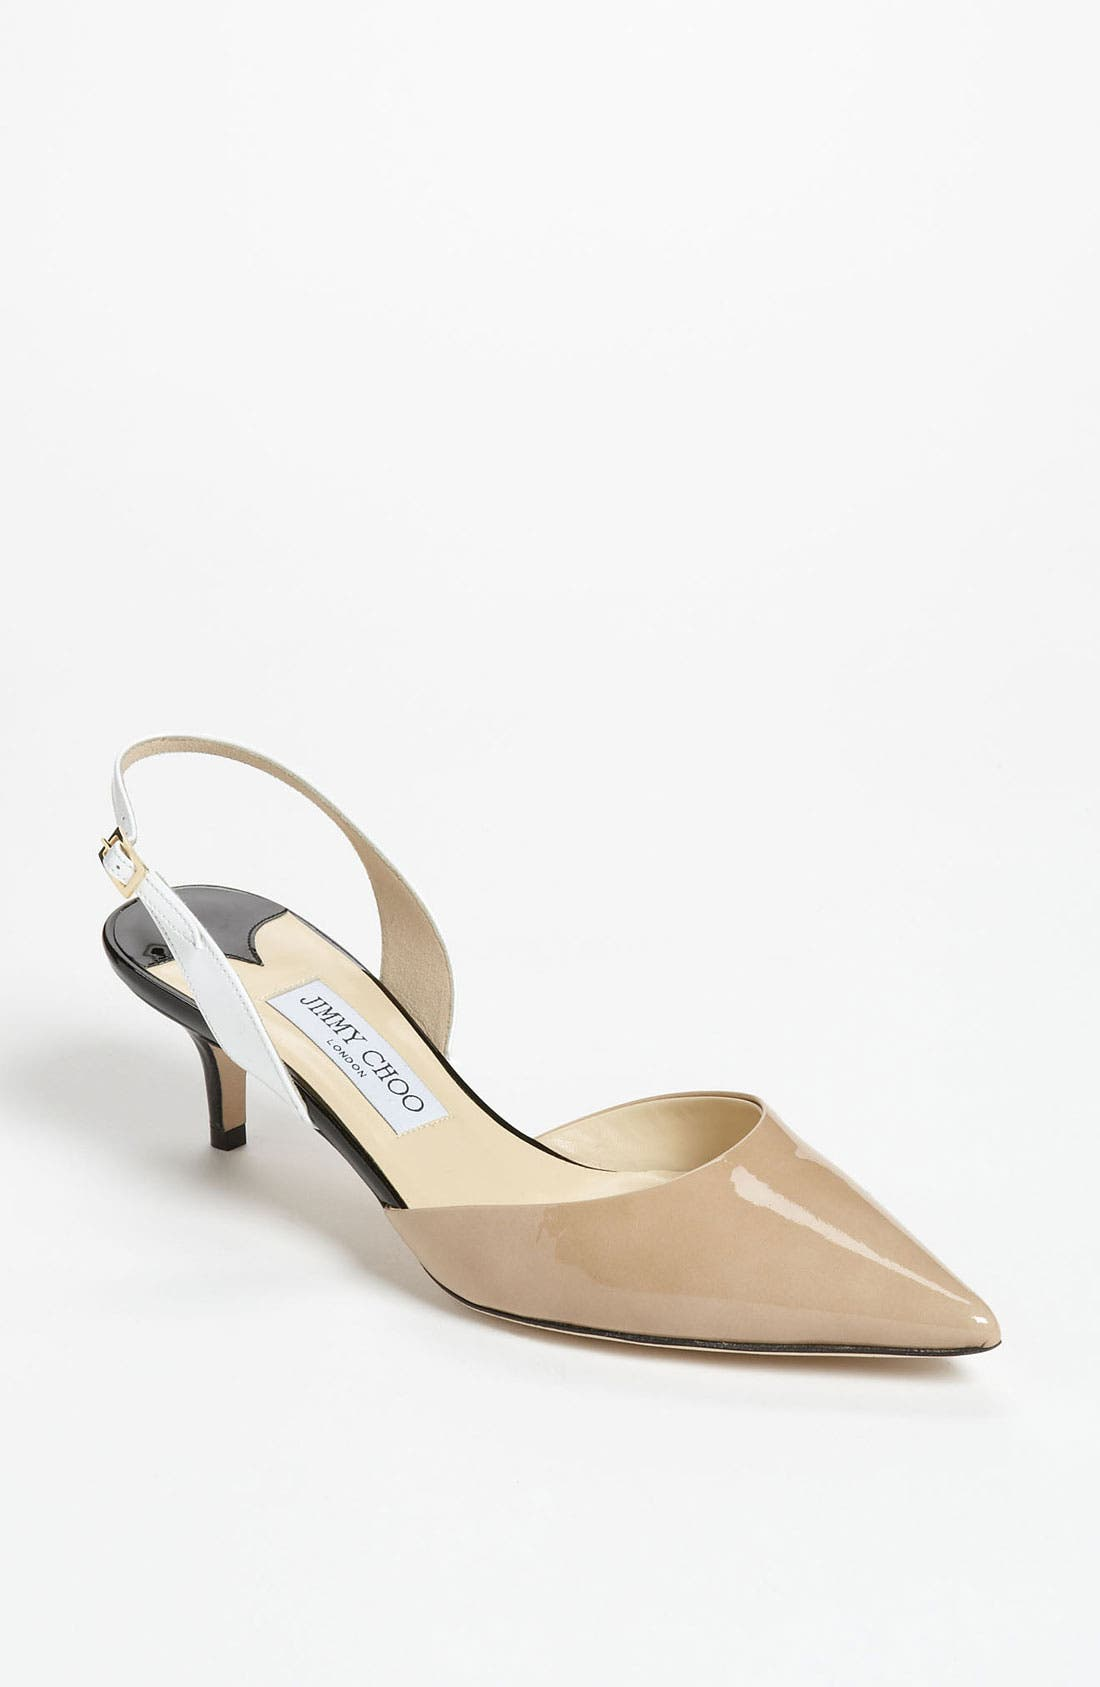 Main Image - Jimmy Choo 'Varia' Pump